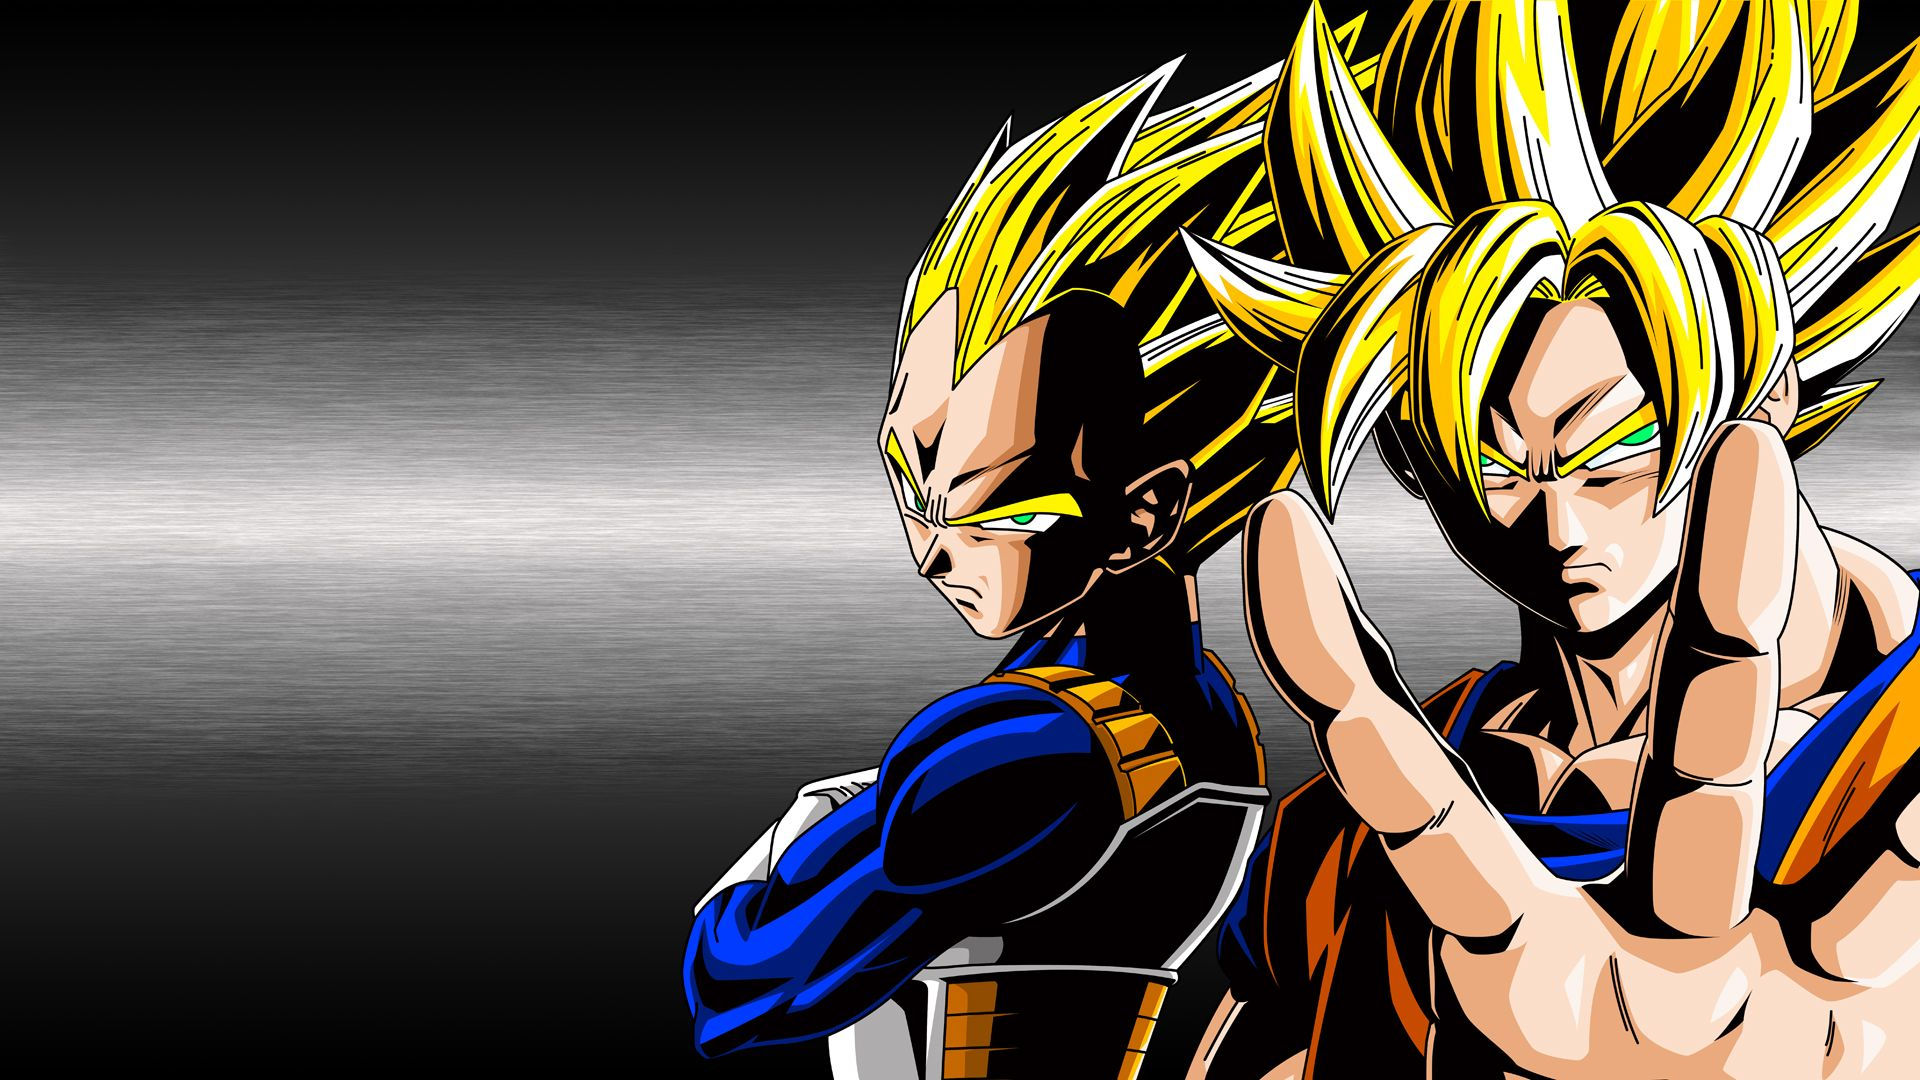 Dbz Hd Wallpaper 1920x1080 Wallpapersafari Desktop Wallpapers